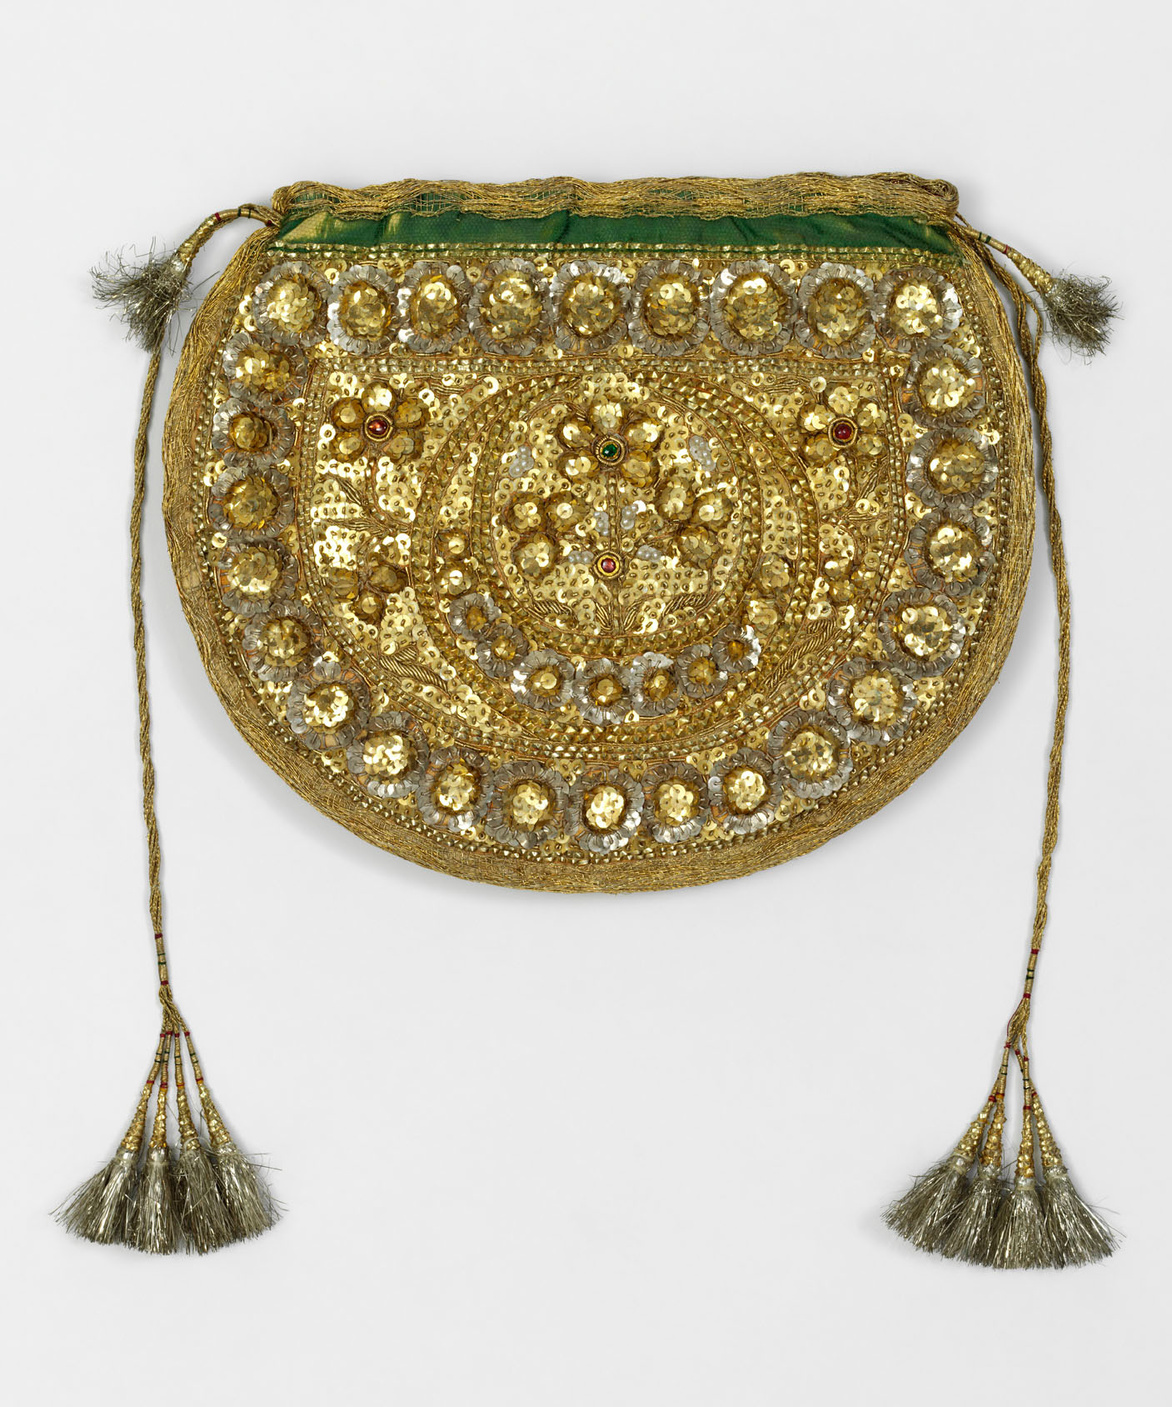 Gold purse with pearls, c.1855. Dehli, DR